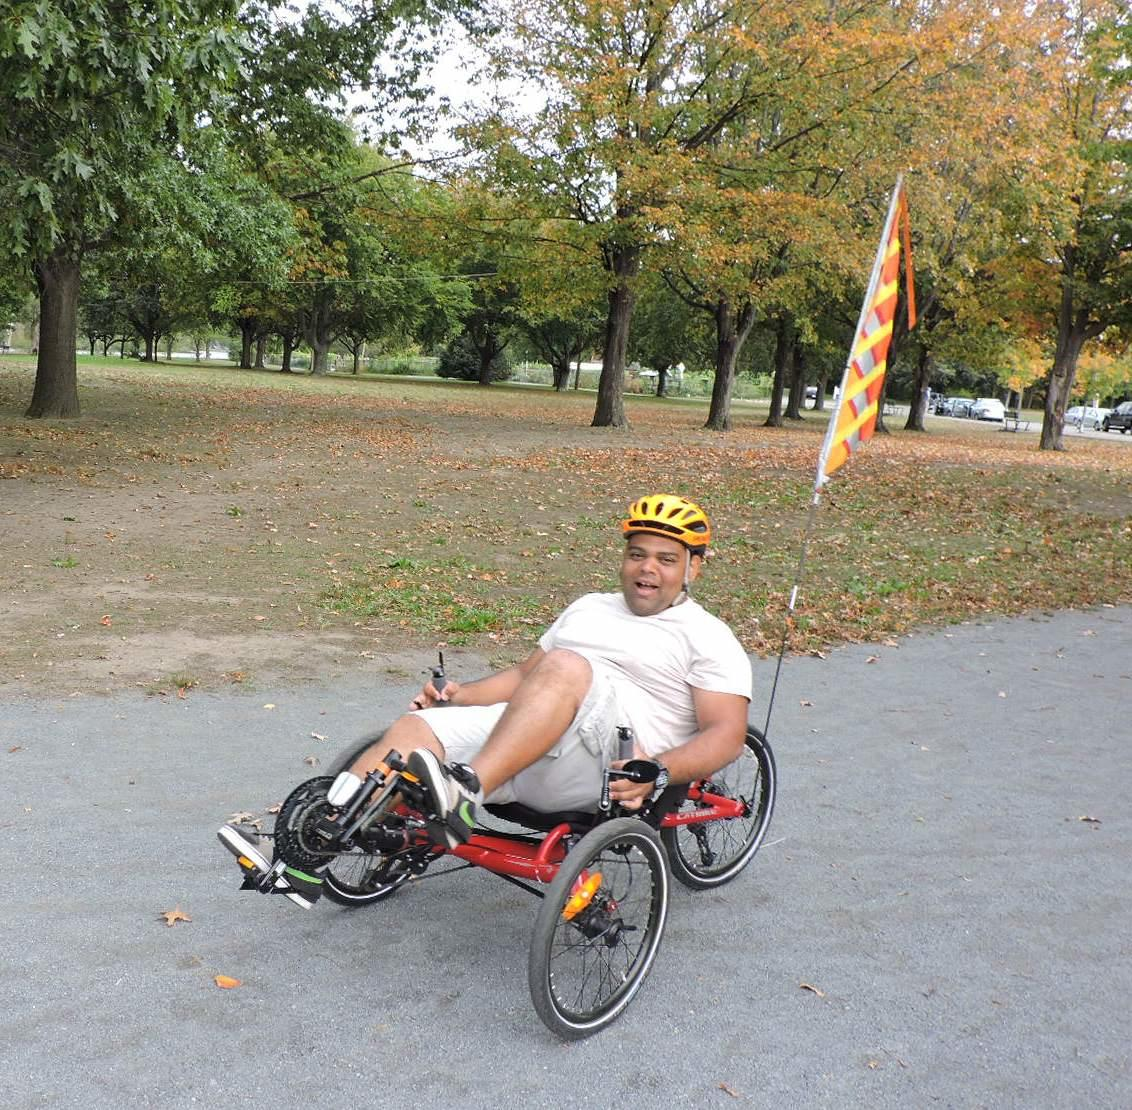 A photo of person riding a recumbent tricycle on a bike path, with a large lawn behind him. The trees on the lawn have green and orange leaves.